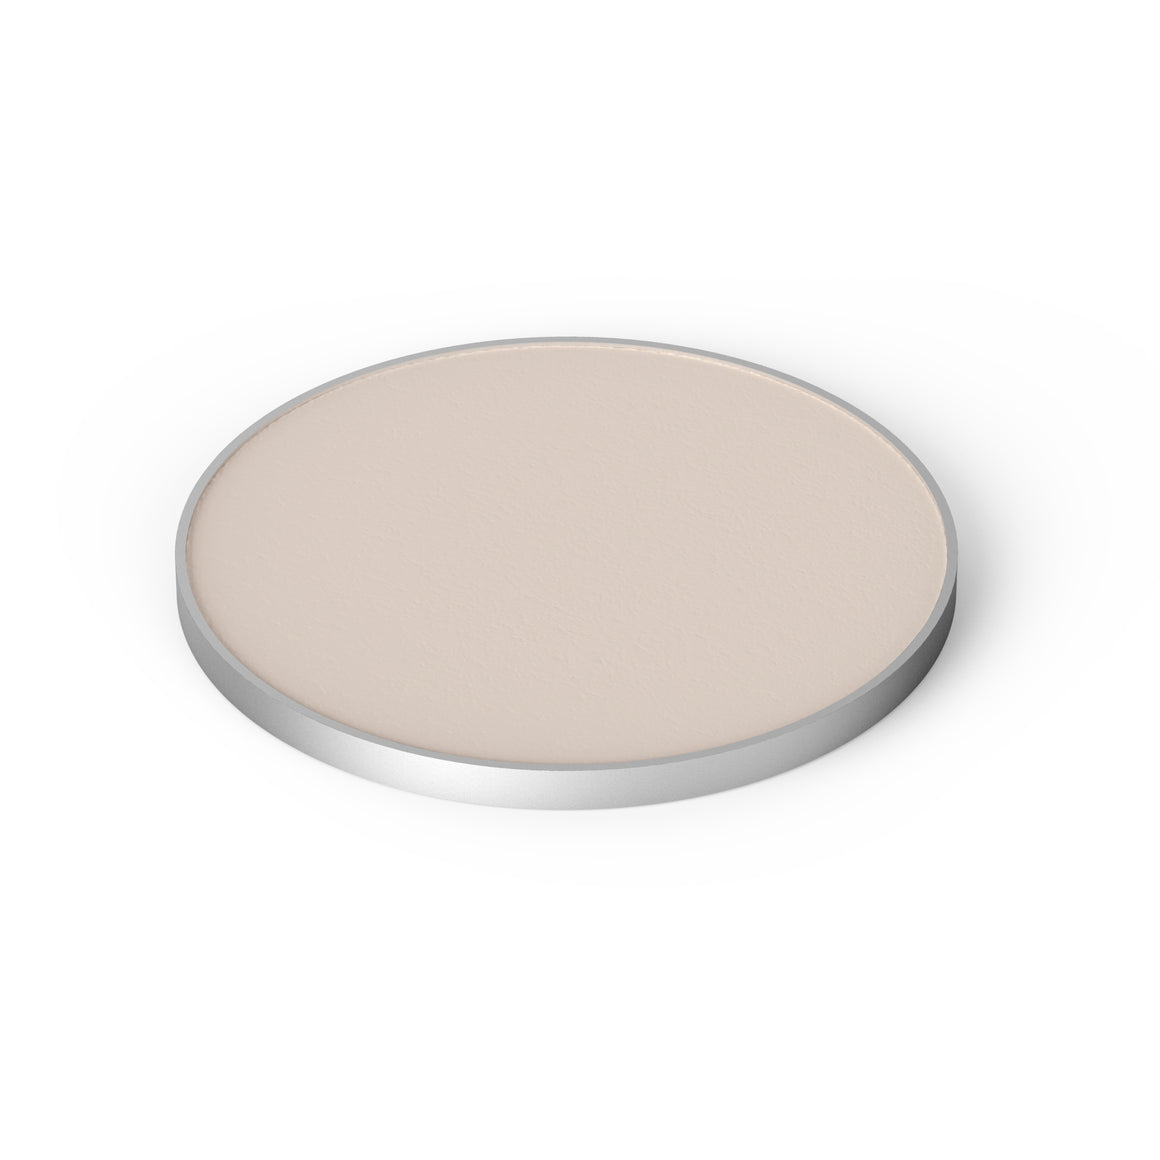 Pressed Mineral Foundation (Refill Pan)